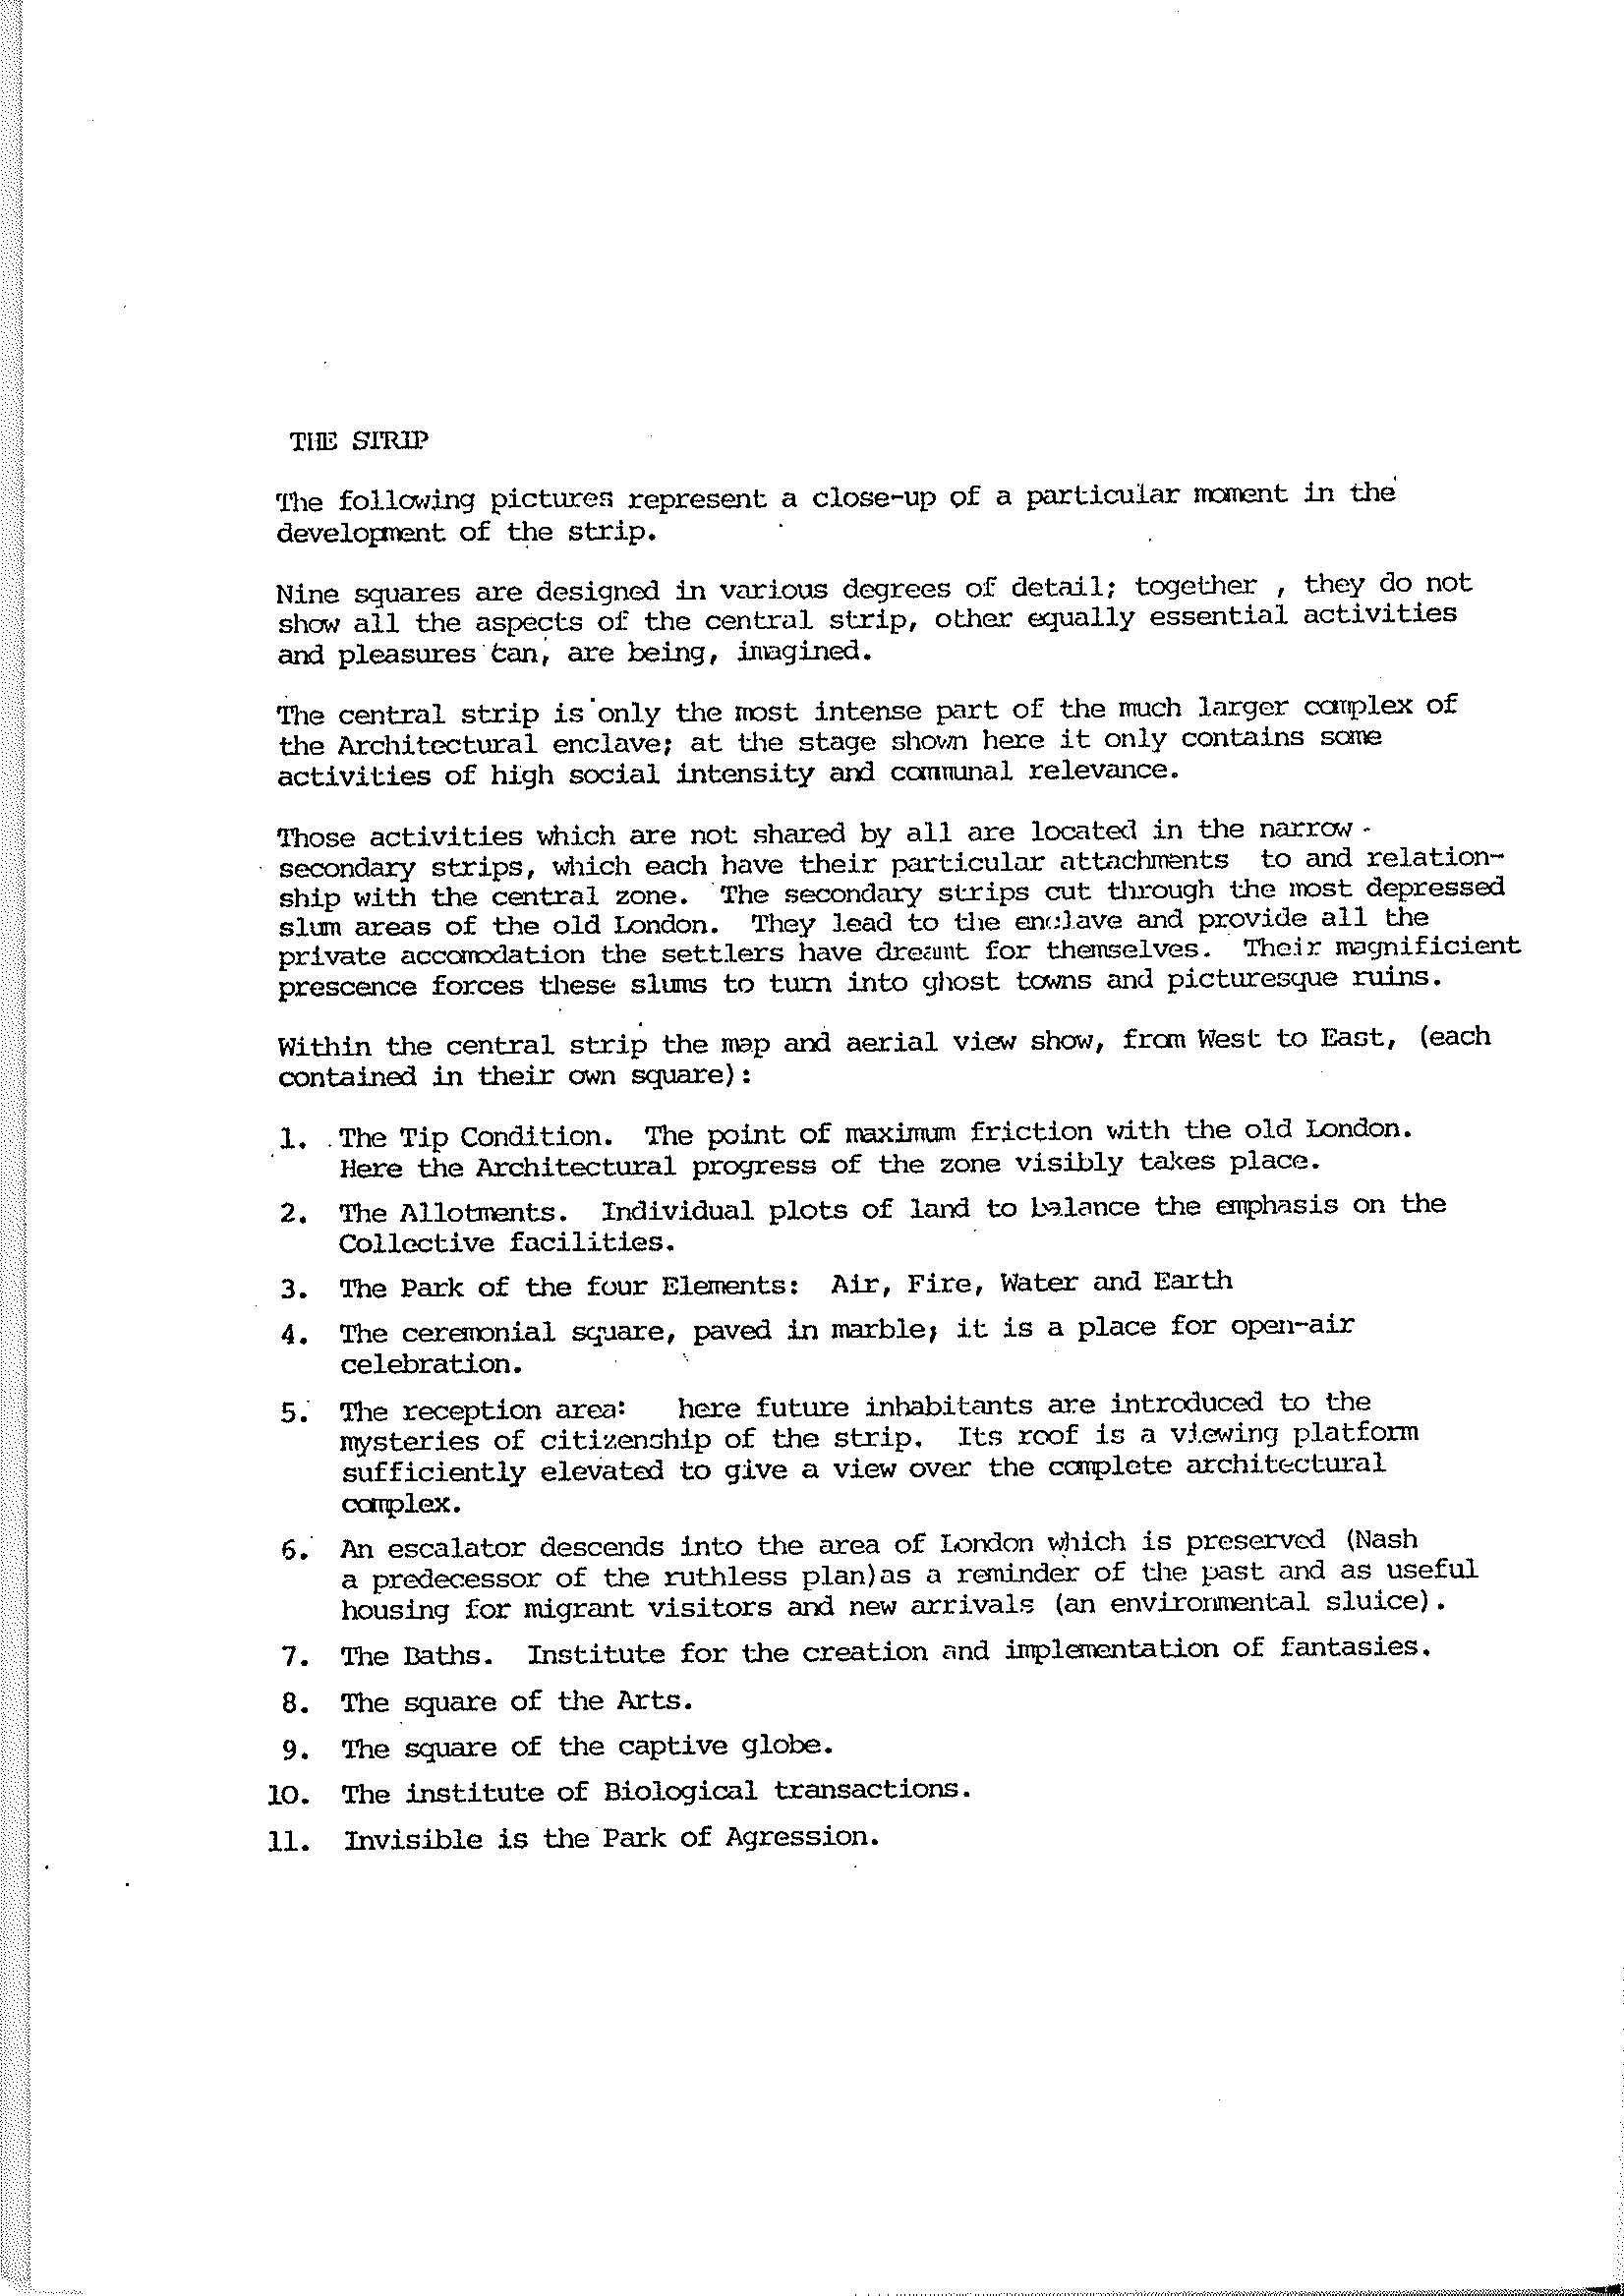 rem koolhaas thesis exodus Rem koolhaas' 1972 architectural association thesis (together with madelon vreisendorp, elia zenghelis, and zoe zenghelis) like in west berlin at the time, the.